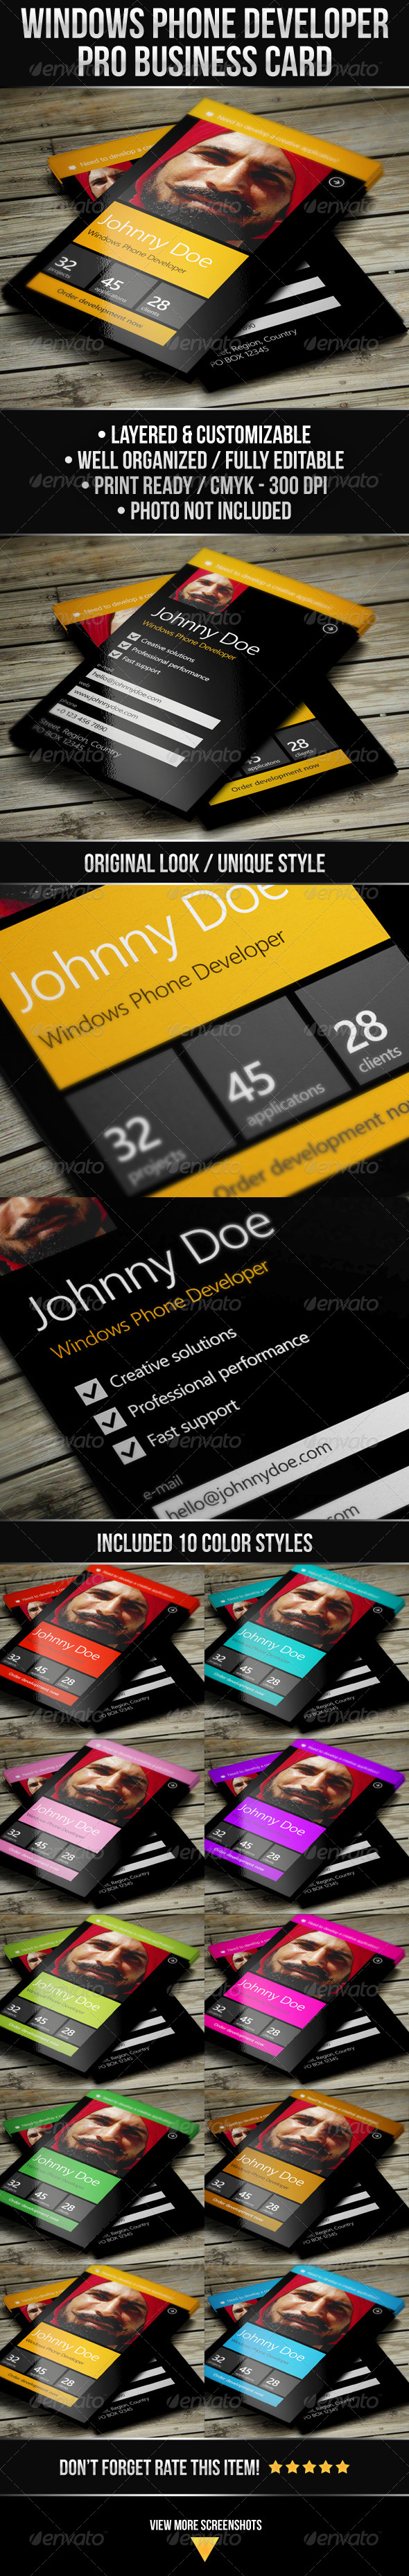 Windows Phone Developer Business Card - Industry Specific Business Cards